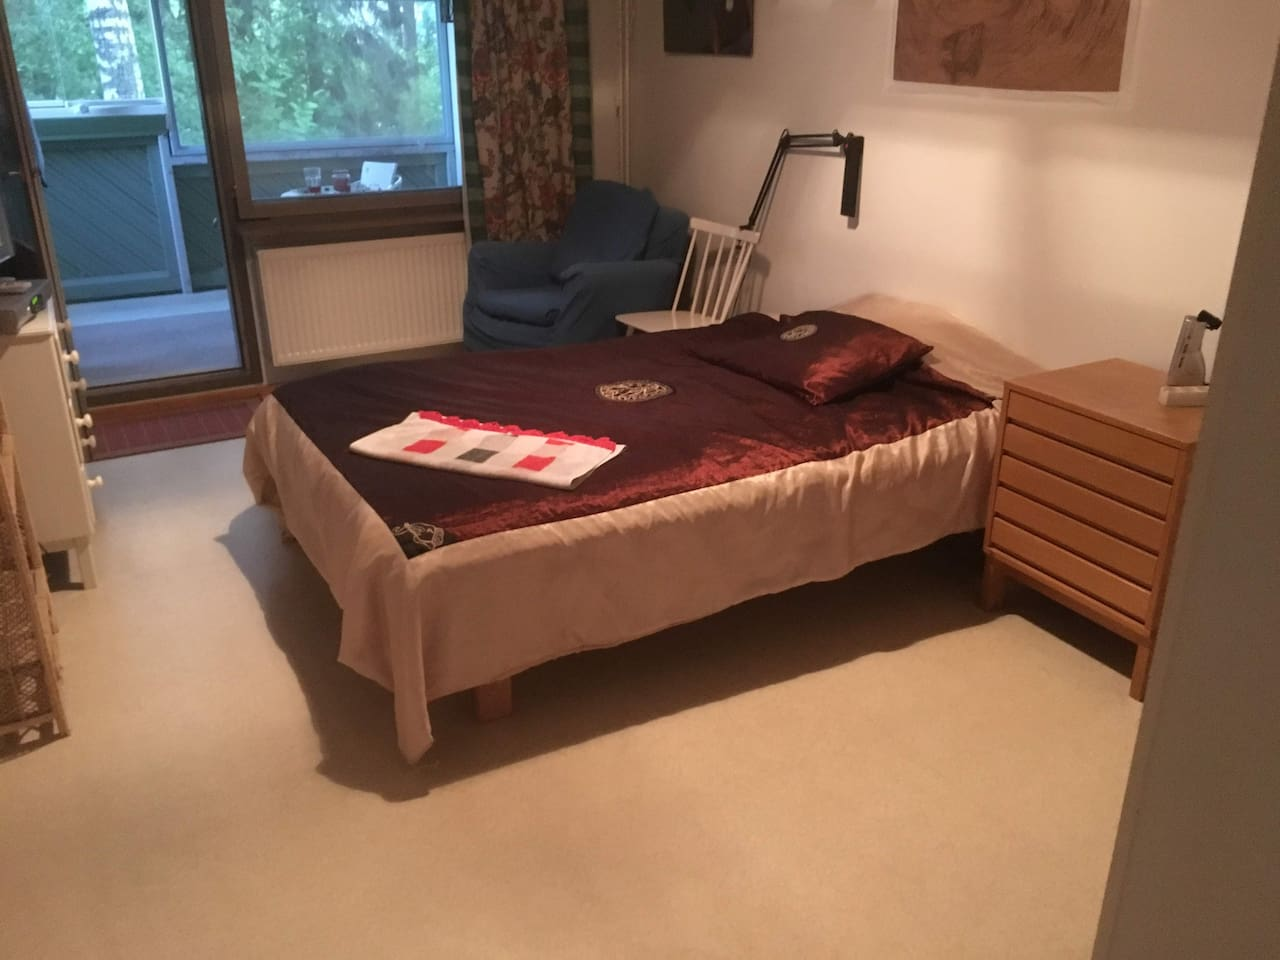 Guest Bed room and balcony